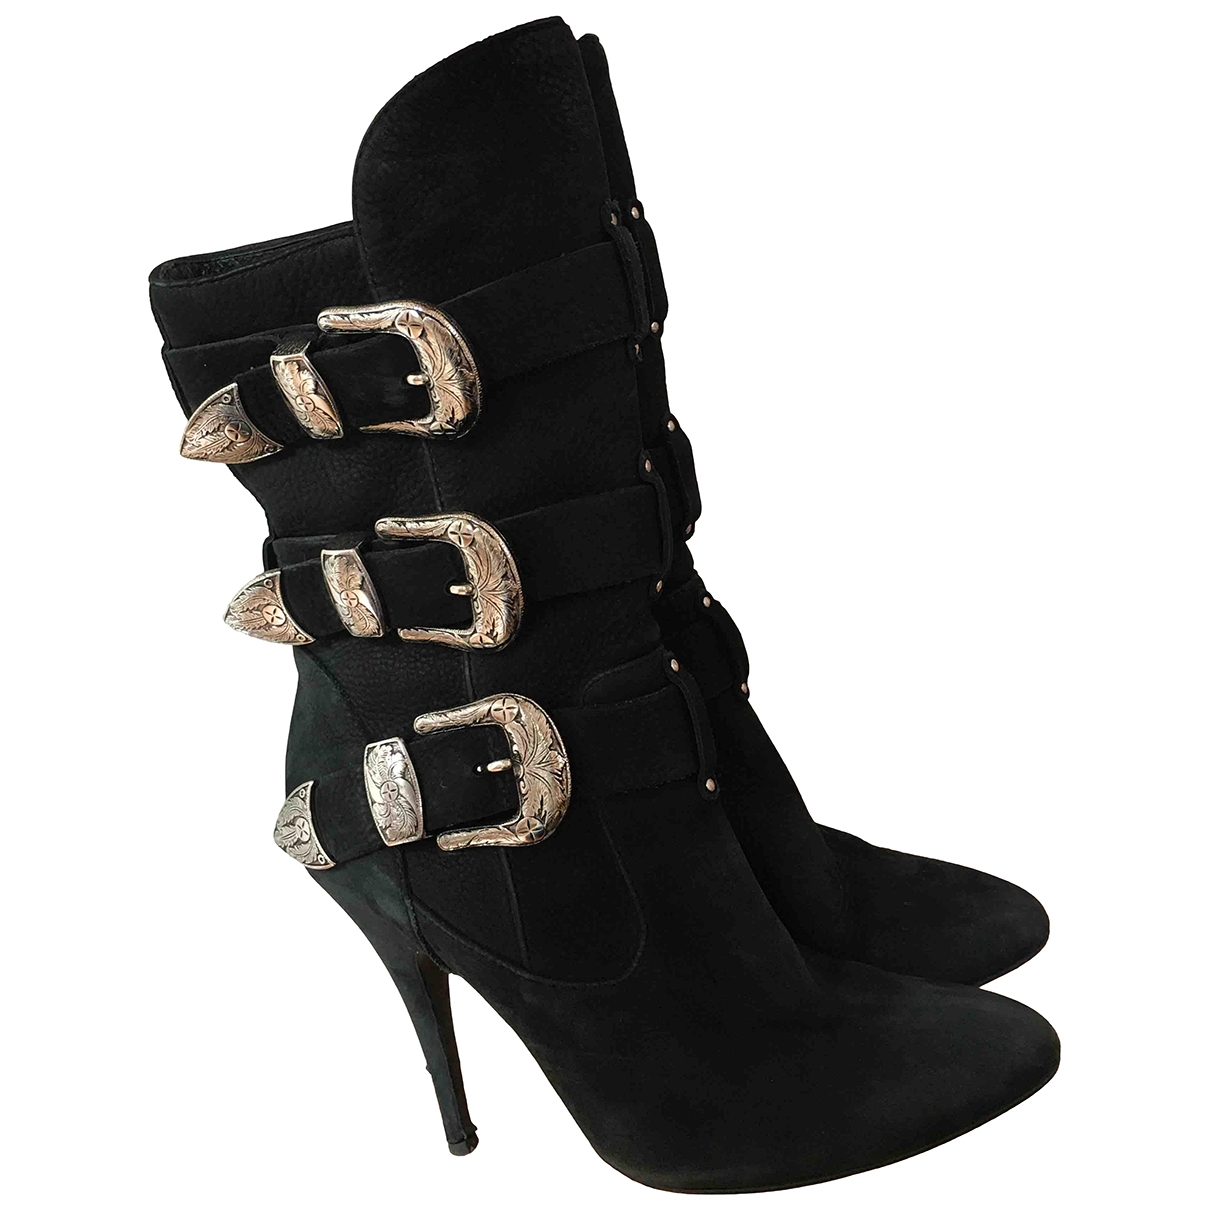 Giuseppe Zanotti X Balmain N Black Leather Ankle boots for Women